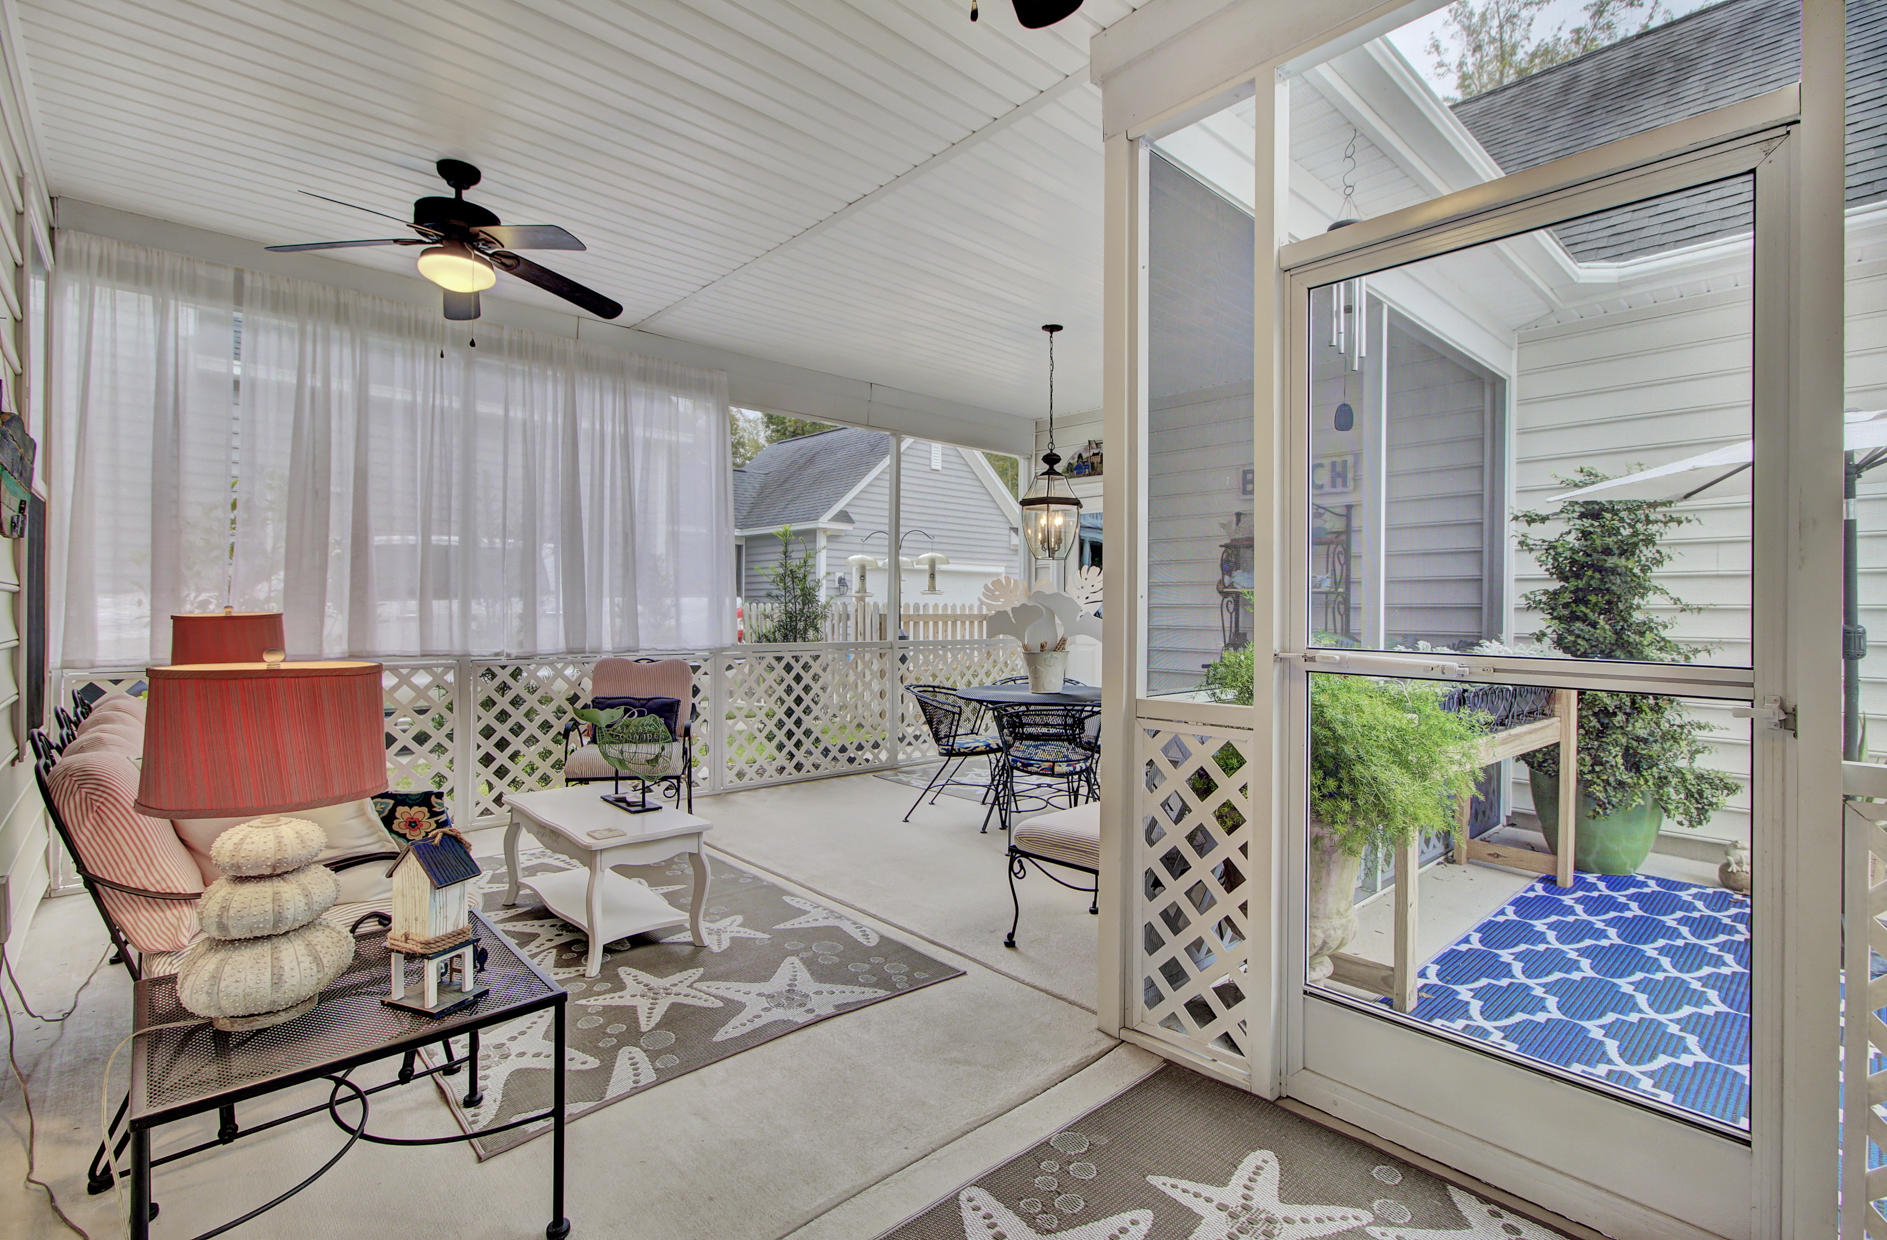 Boltons Landing Homes For Sale - 3034 Scuba, Charleston, SC - 35